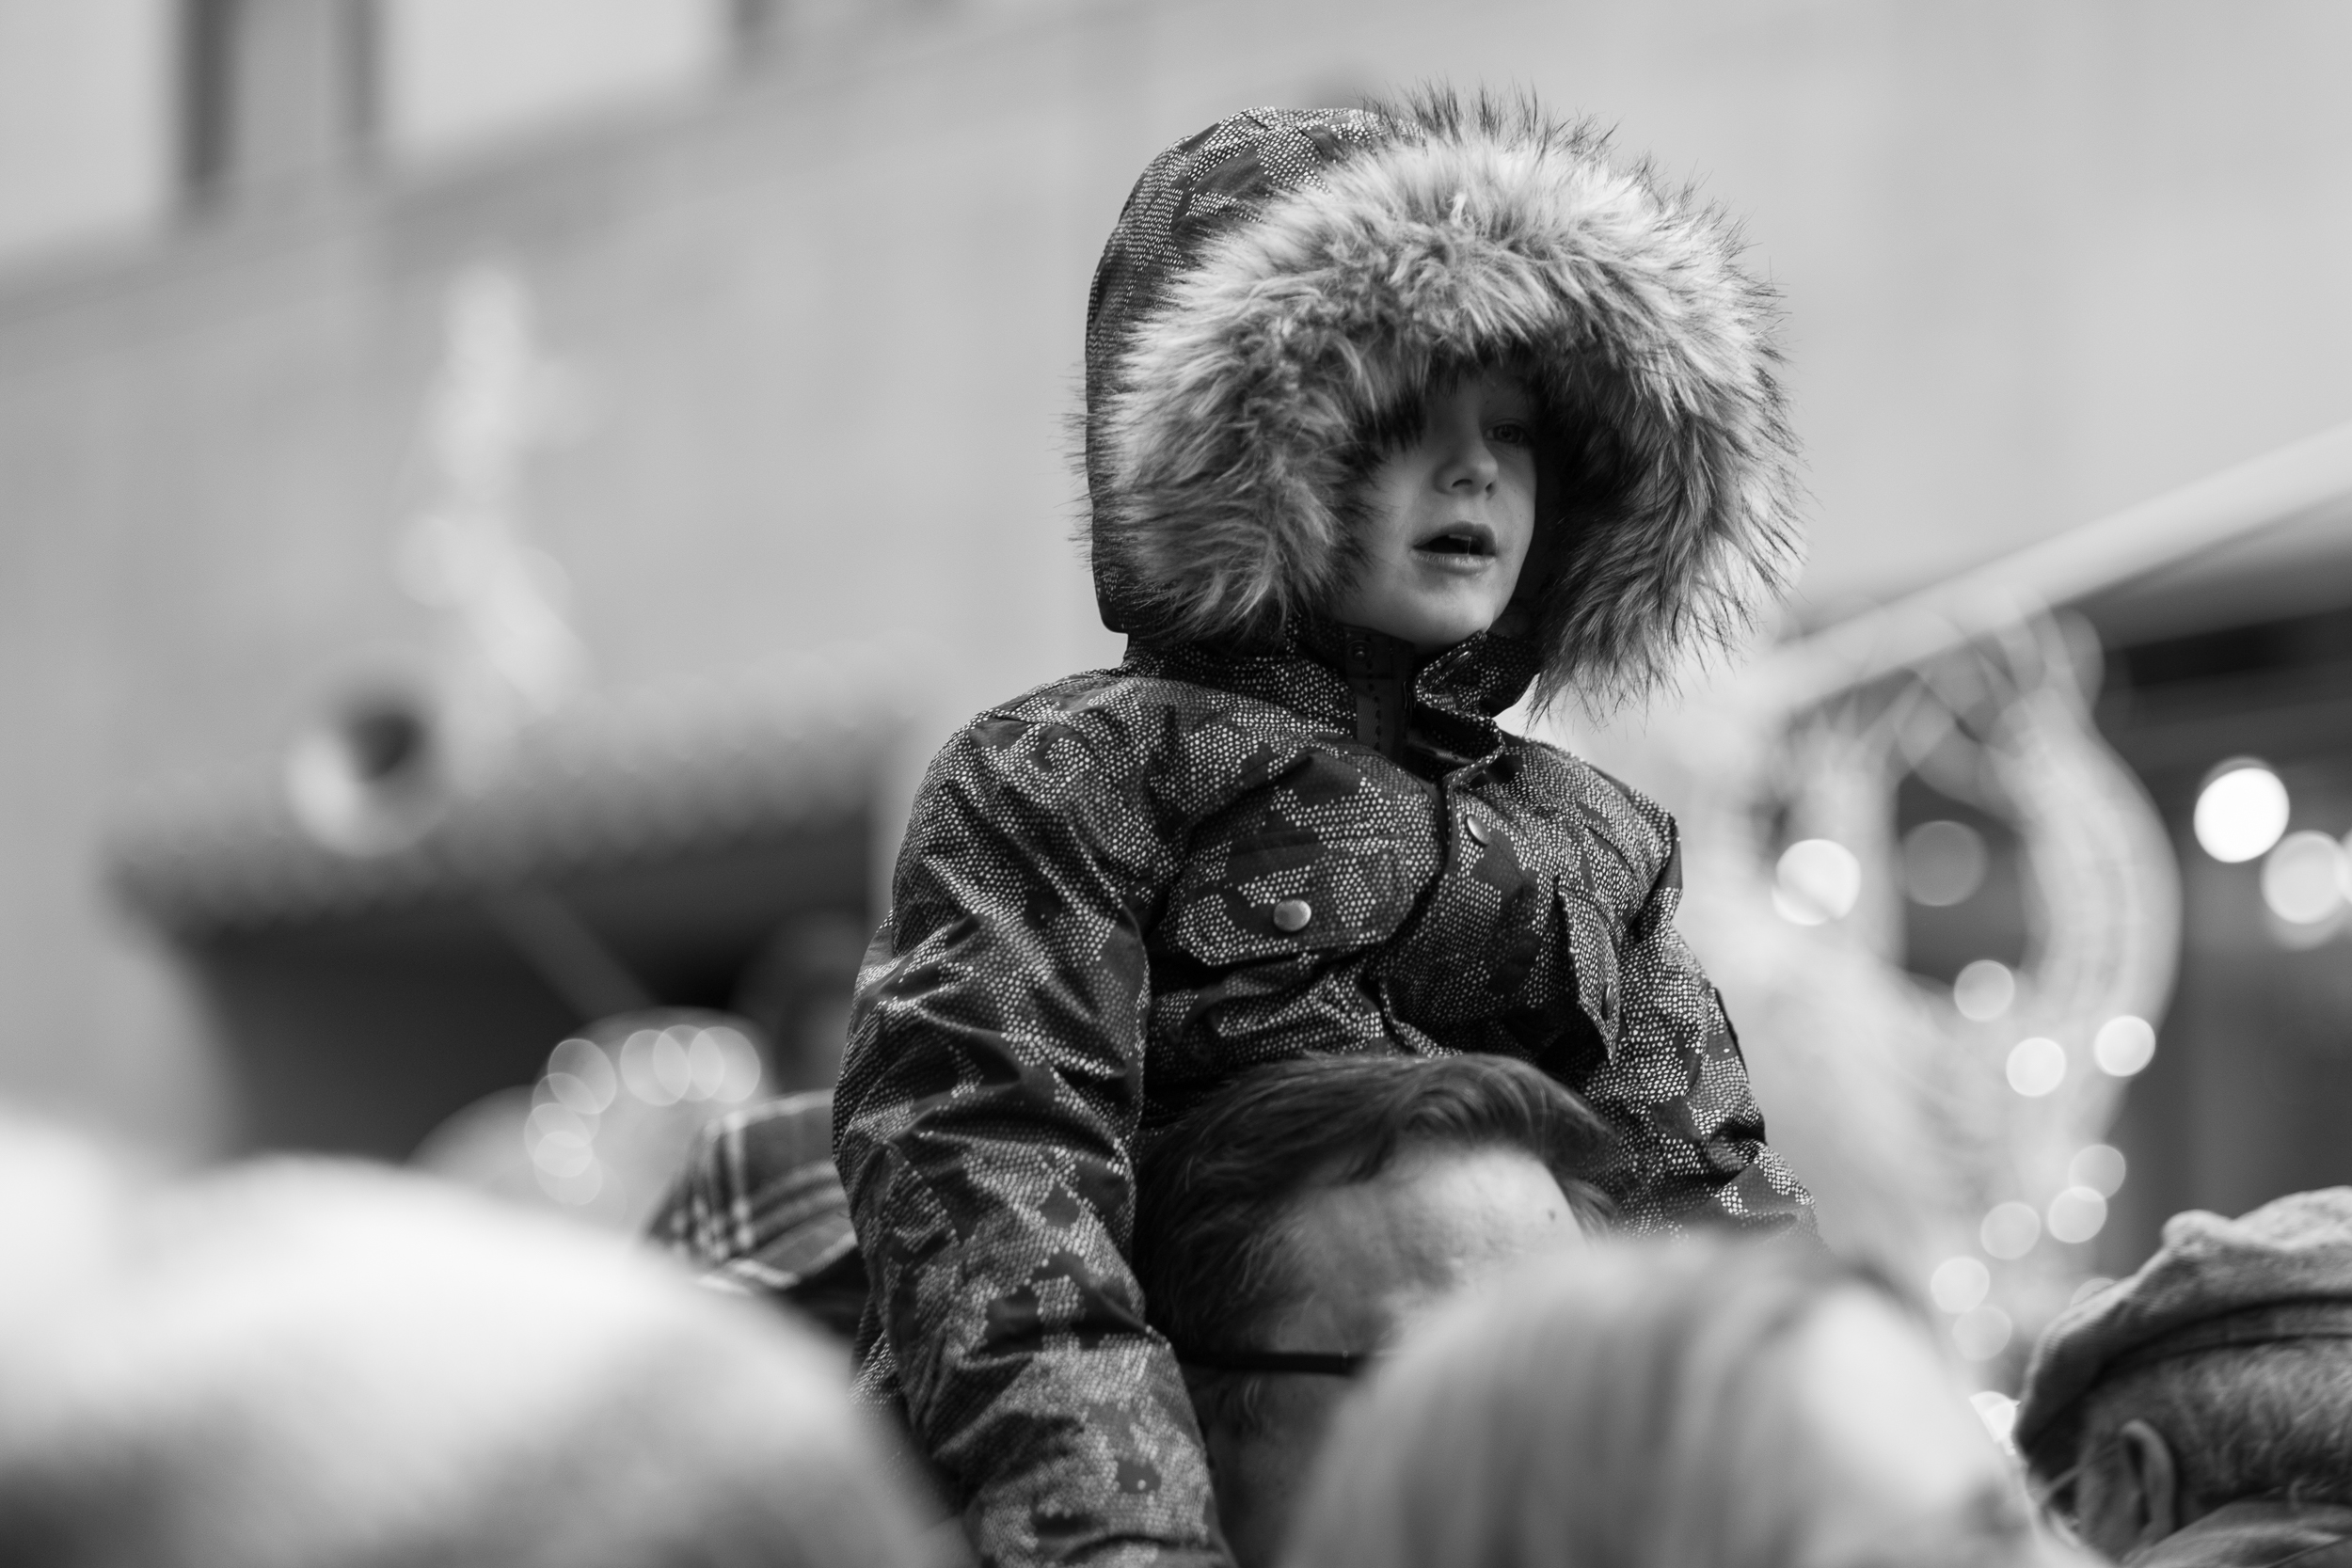 The View. A boy is carried on his dad's shoulders to see the holiday tree in Rockefeller Center. Leica M10 with 90mm Summicron f/2.